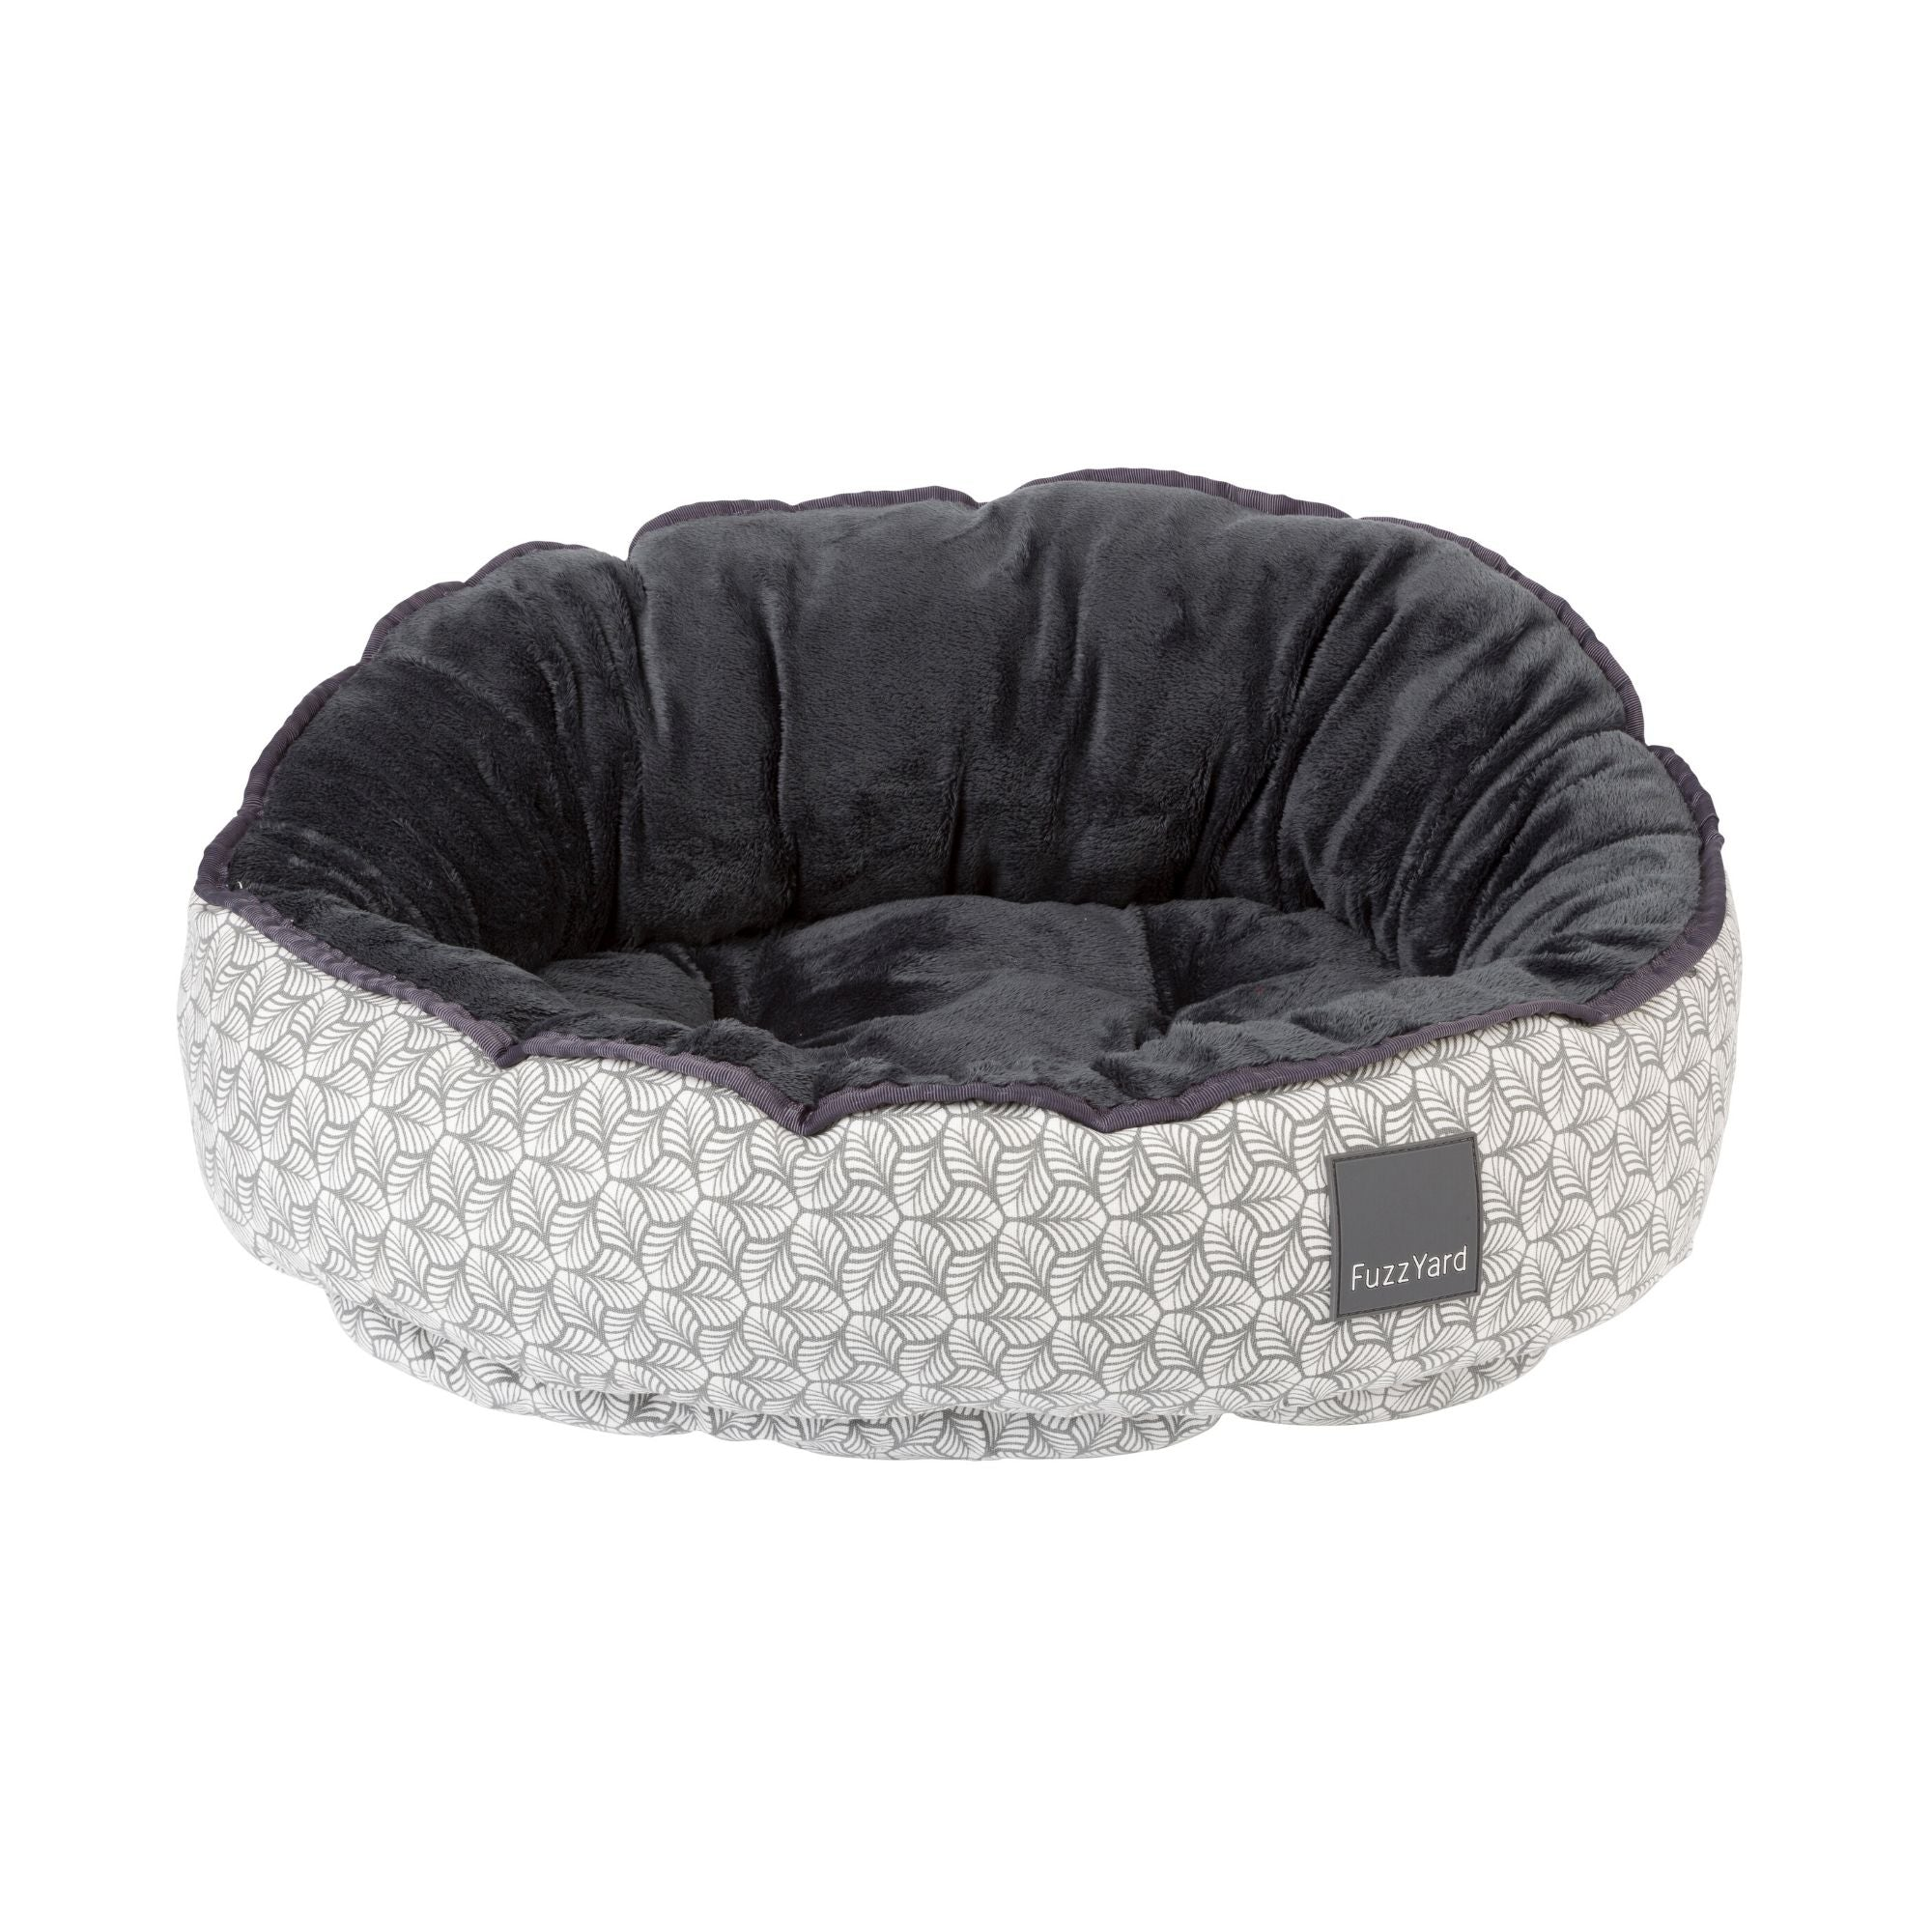 Fuzzyard Fandango Dog Bed, Reversible Fabrics | Barks & Bunnies